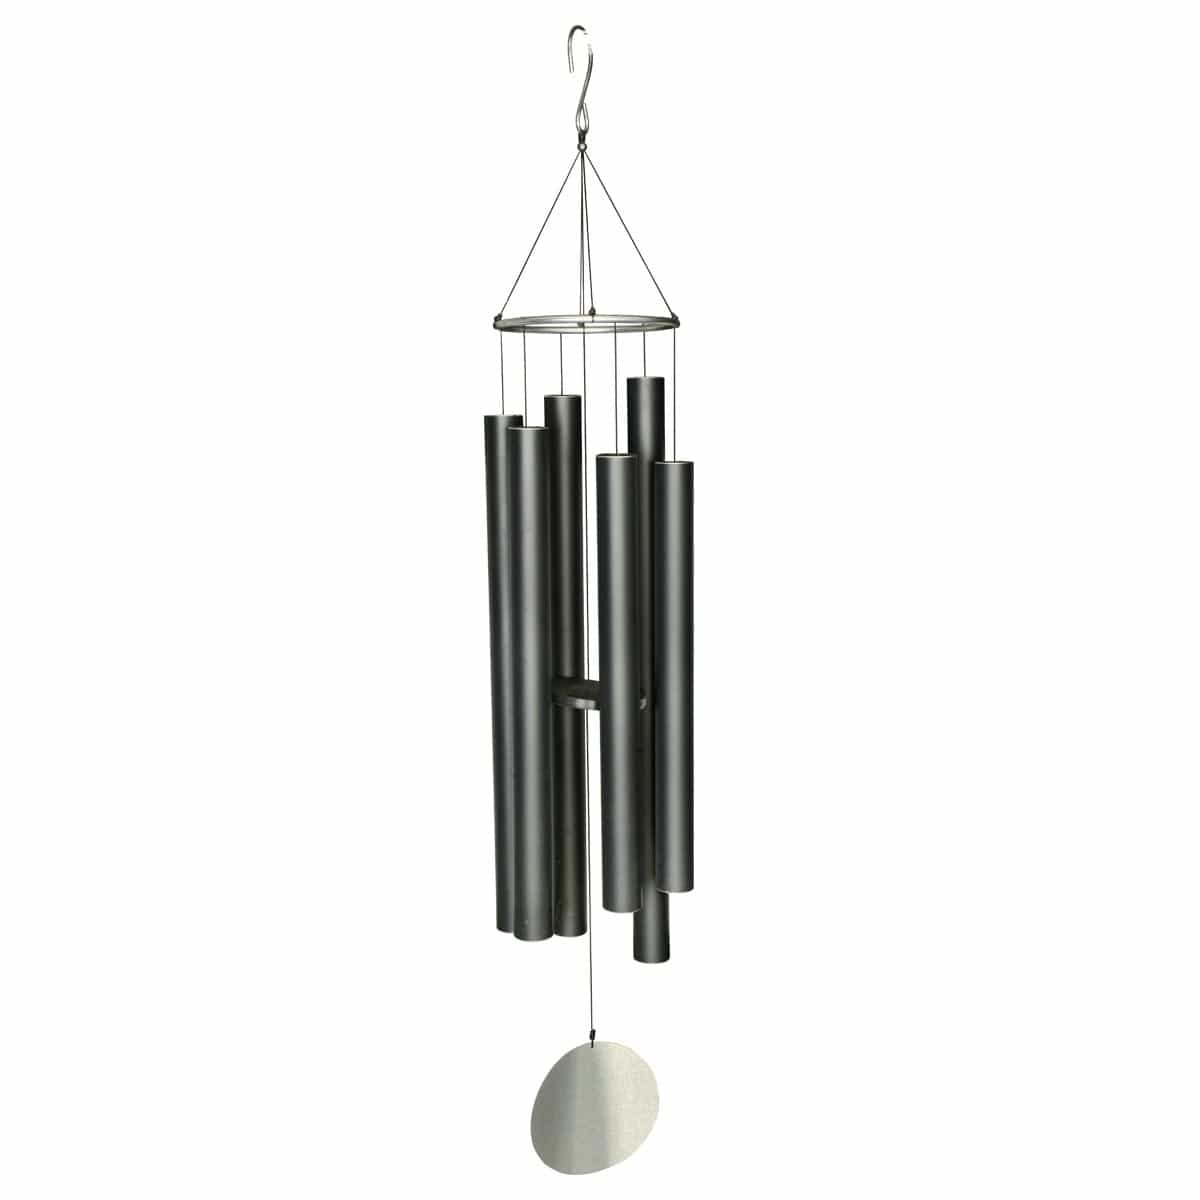 carillon vent 223cm en aluminium noir carillons zen et. Black Bedroom Furniture Sets. Home Design Ideas